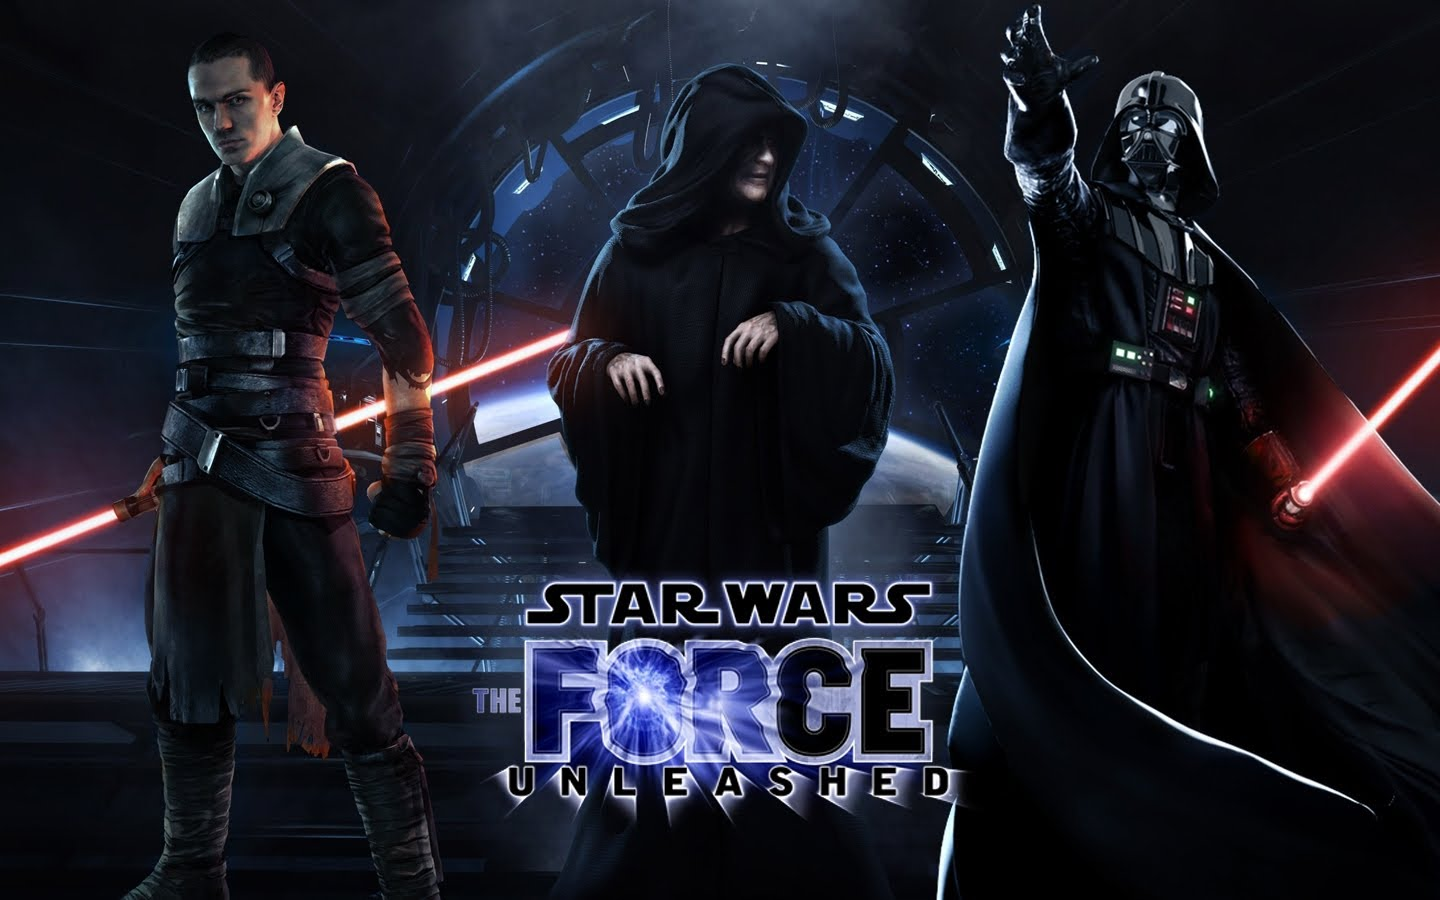 Star Wars The Force Unleashed Ii Wallpaper Star Wars: Battlefront 1440x900